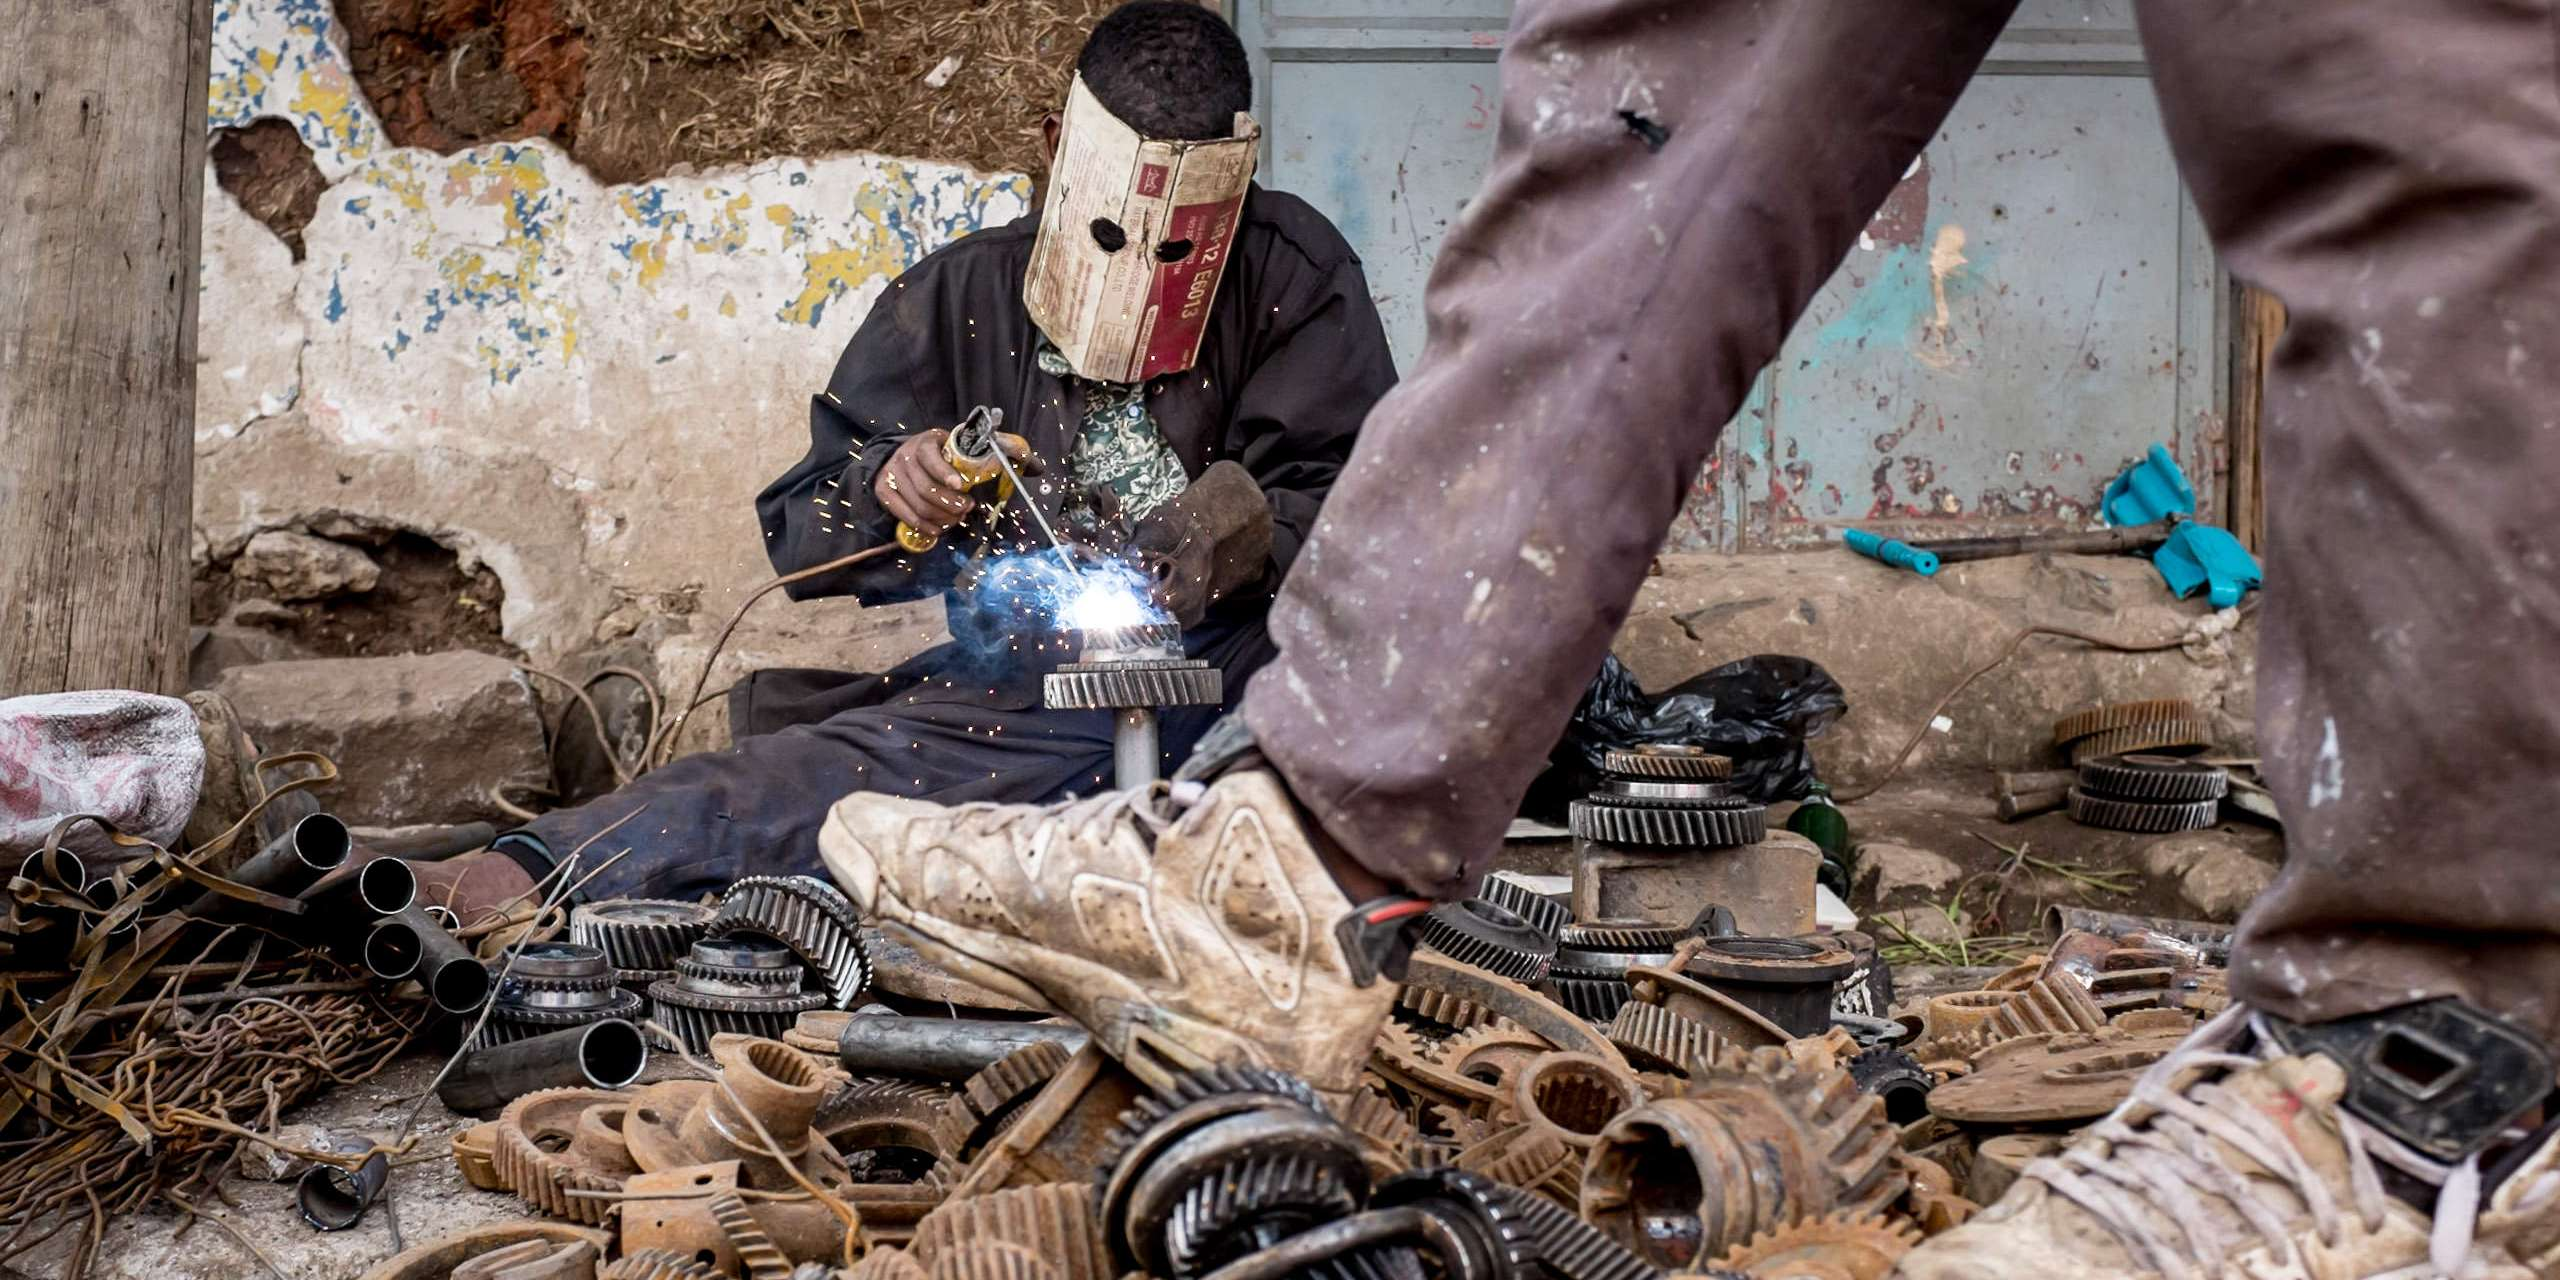 DIY welder in market place in Addis Ababa street photography in Ethiopia